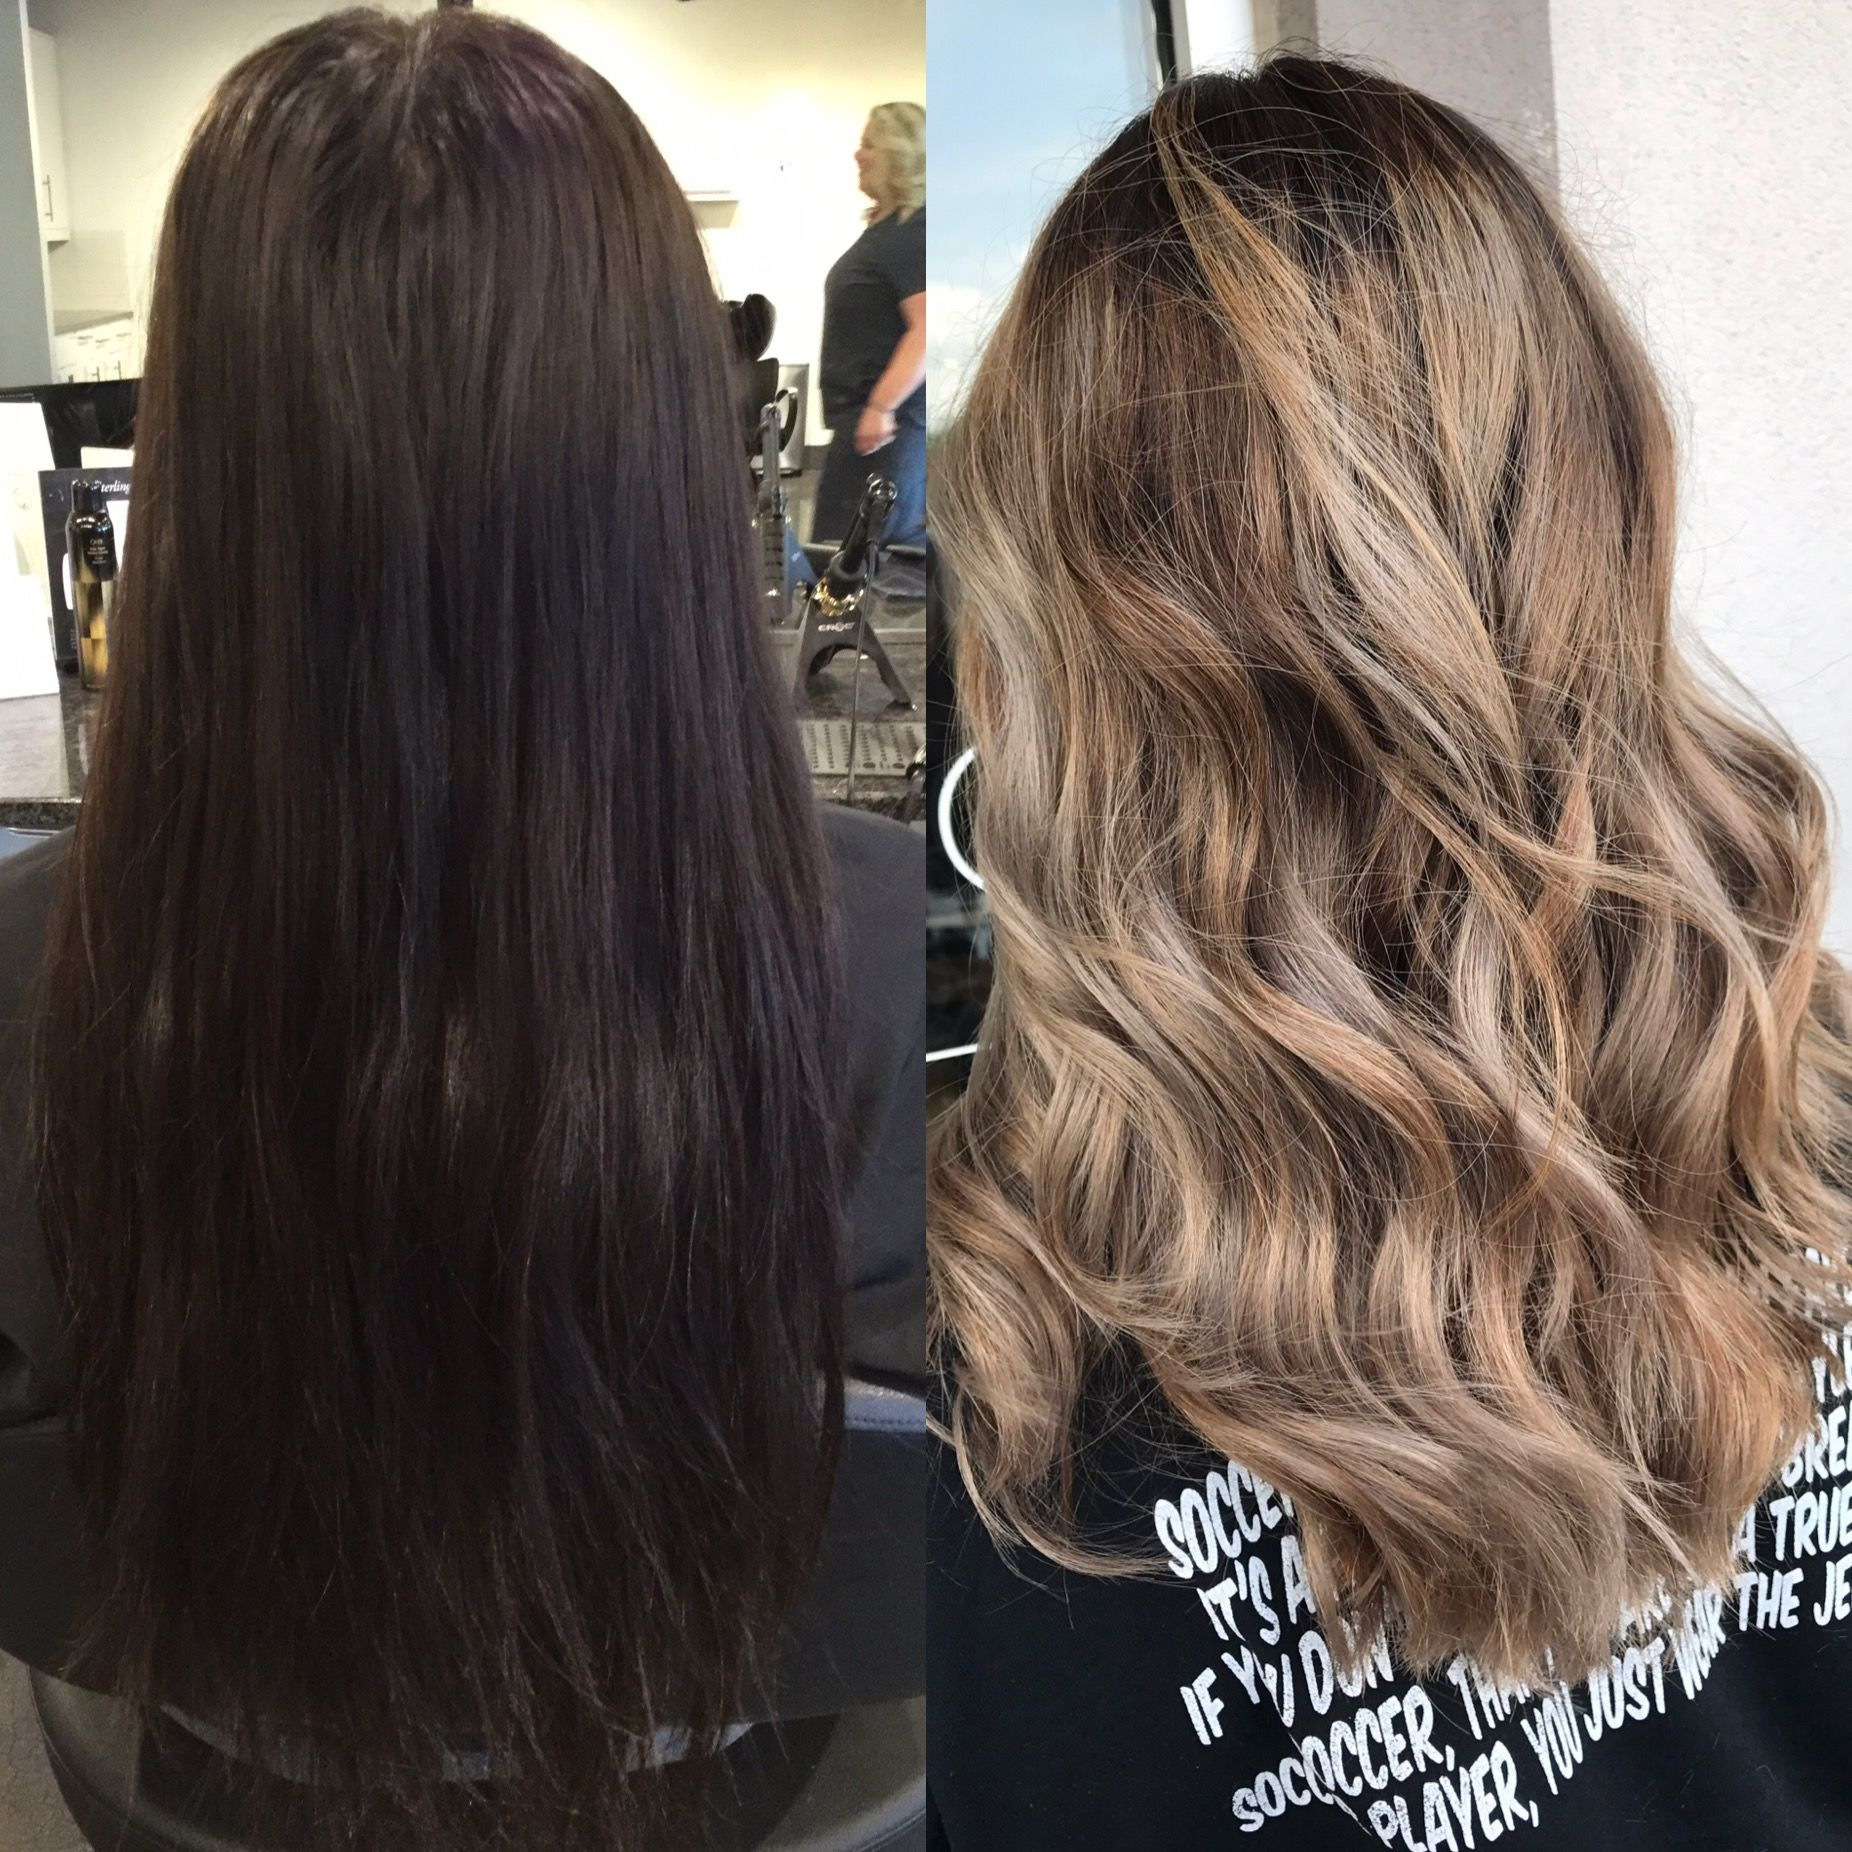 Hair Color Transformation Before And After Hair Color Black Box Dye Transformation Blonde Hair Color Hair Color For Black Hair Black Hair Dye Box Hair Dye